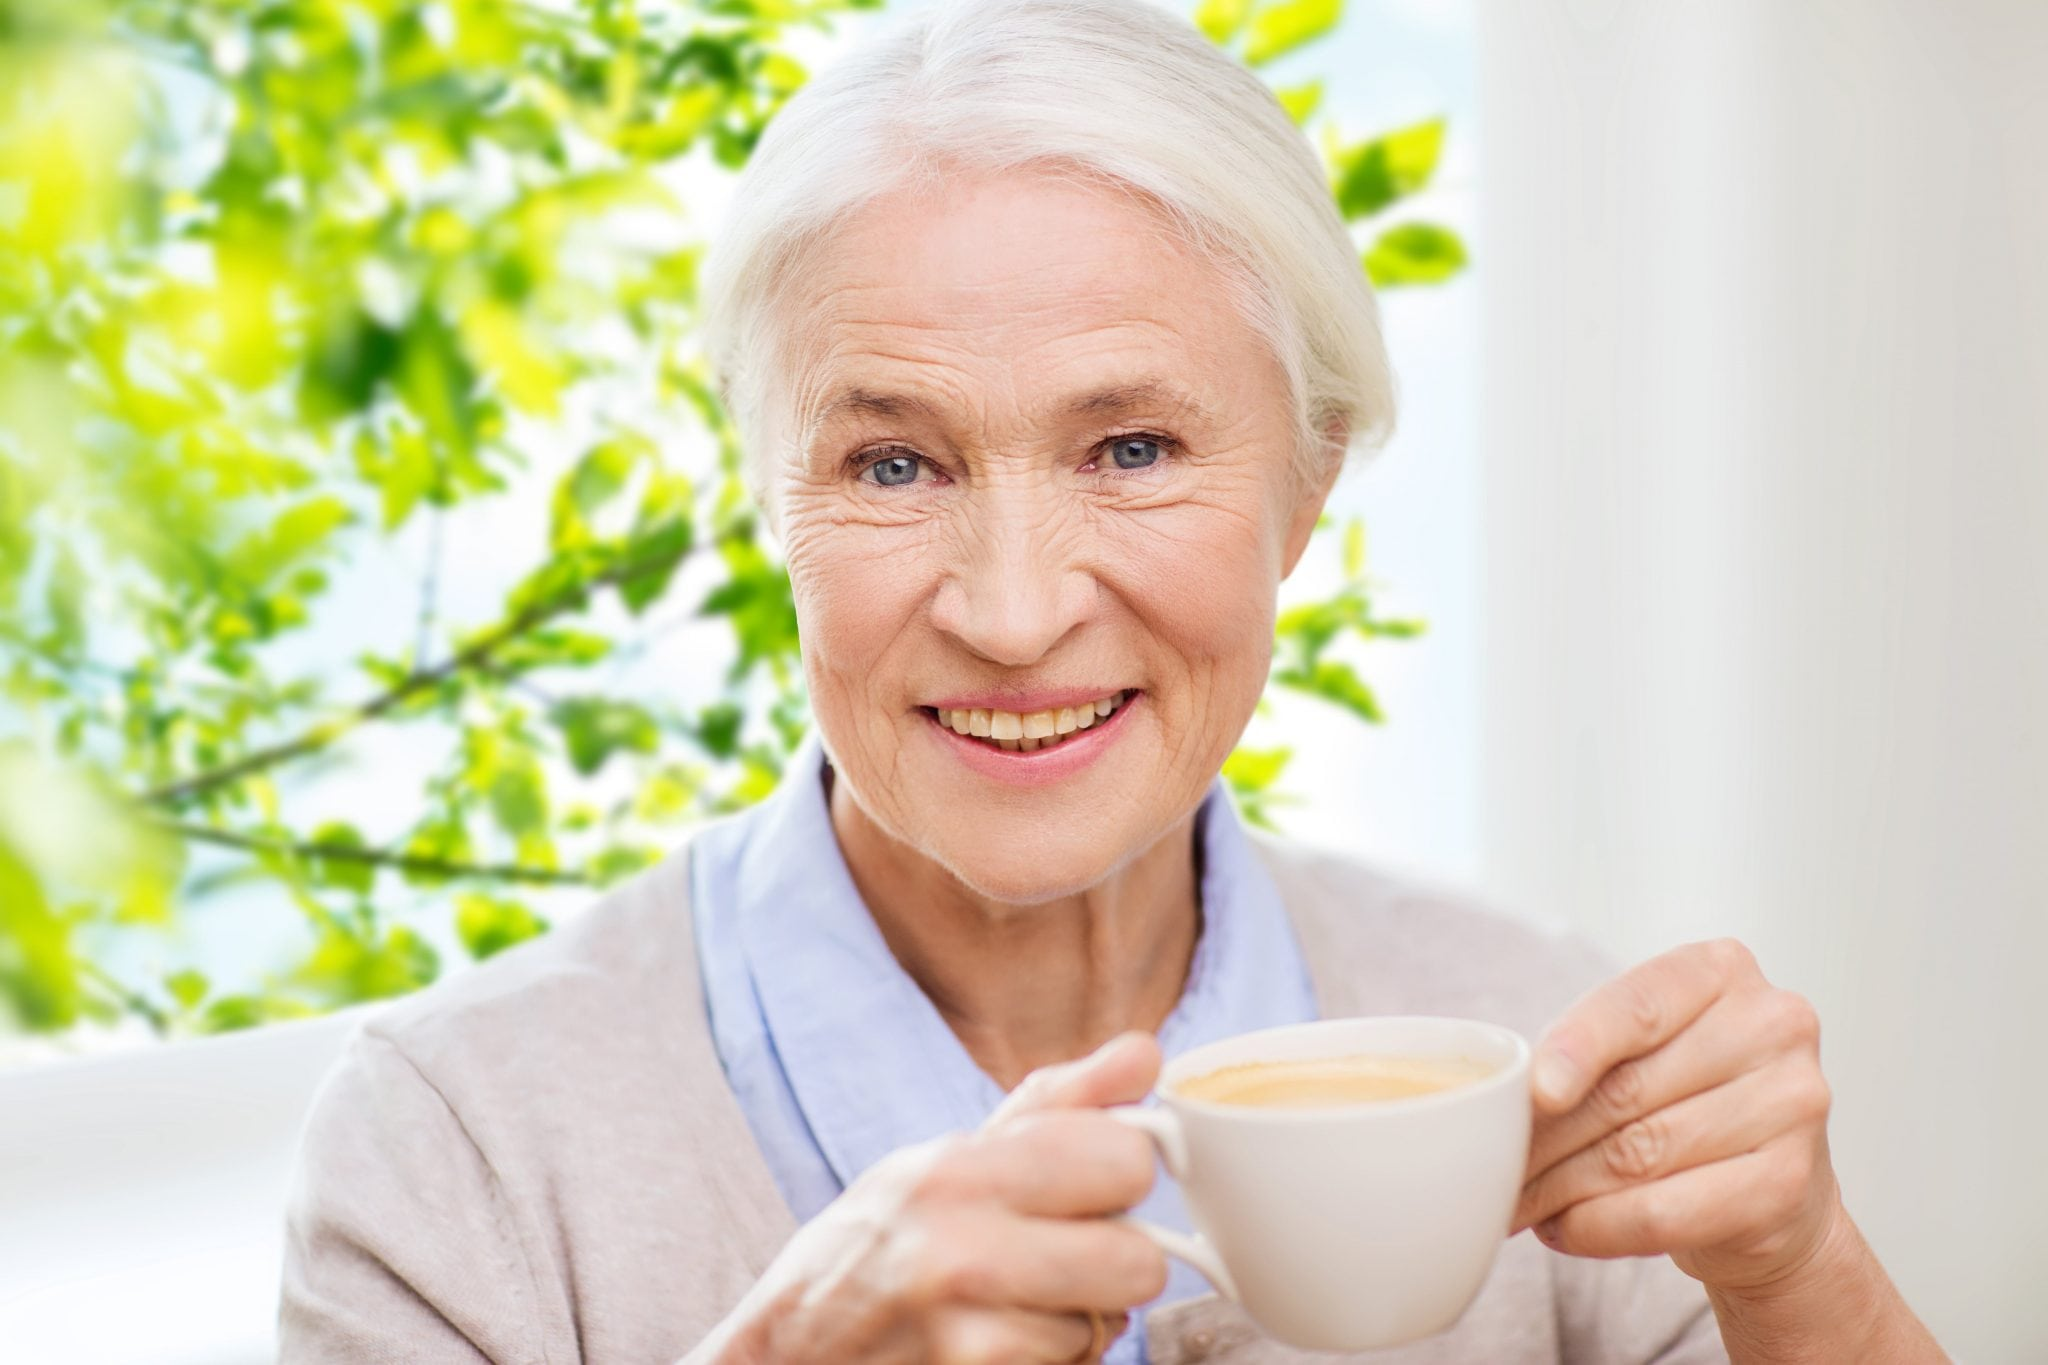 age, drink and people concept - happy smiling senior woman with cup of coffee at home over window and green natural background